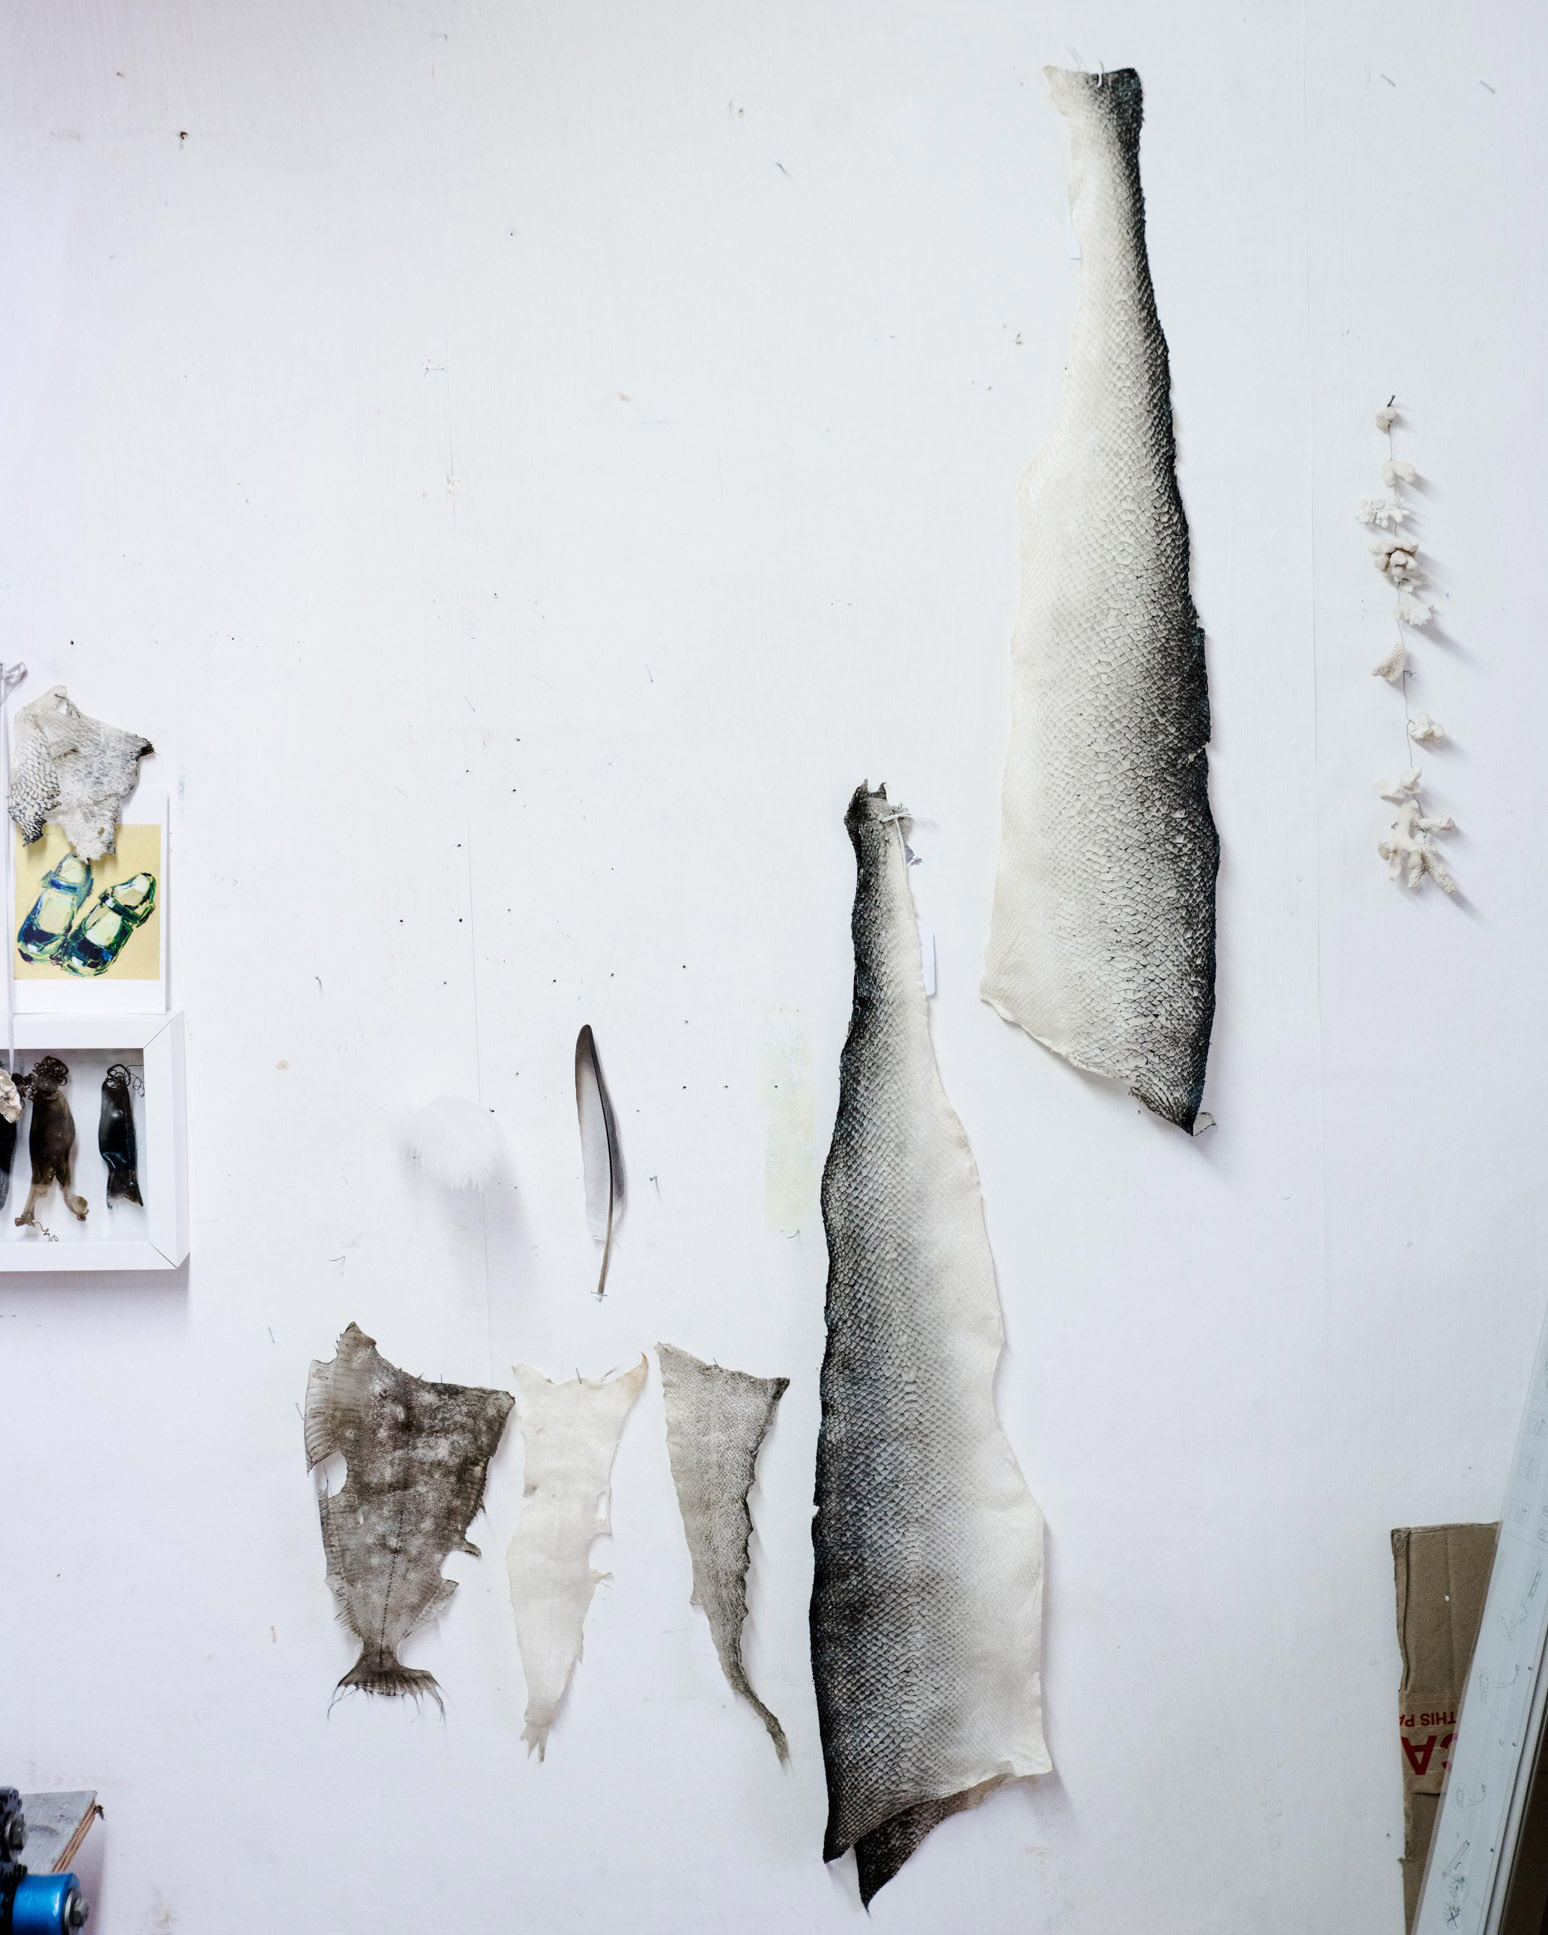 Fish skins hung in Kari's studio.